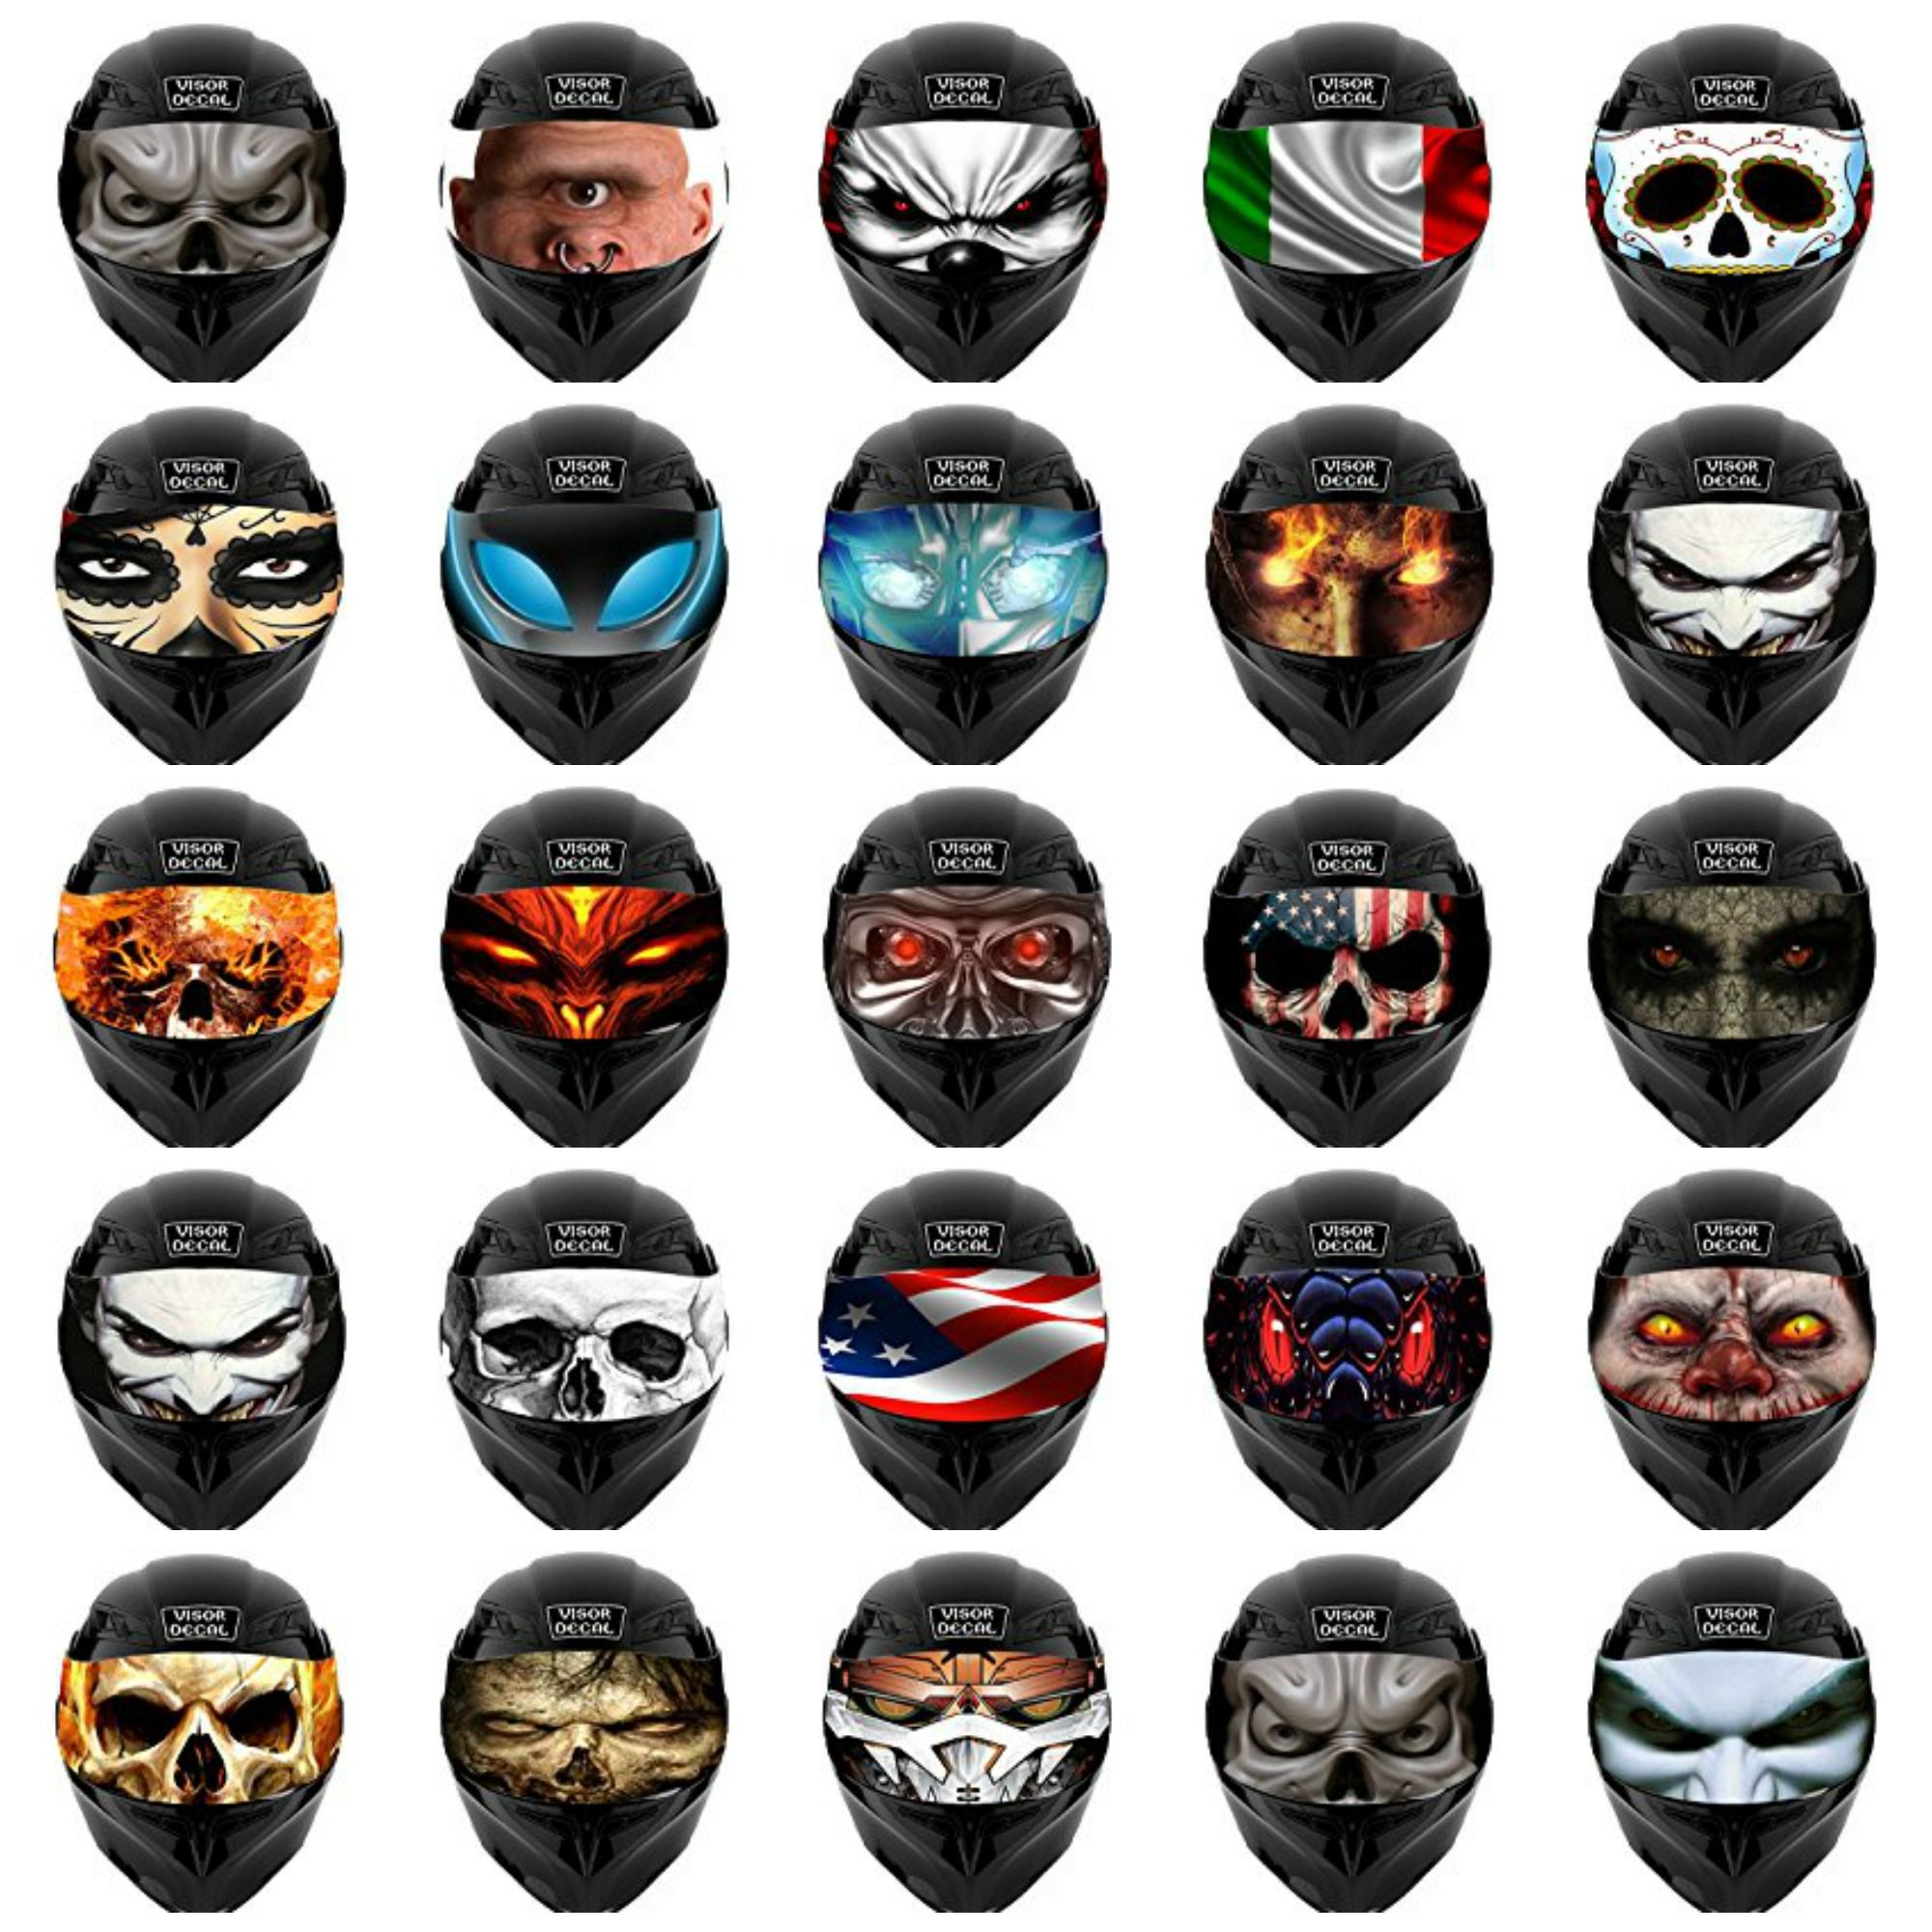 Motorcycle Helmet Visor Decals Motorcycle Helmet